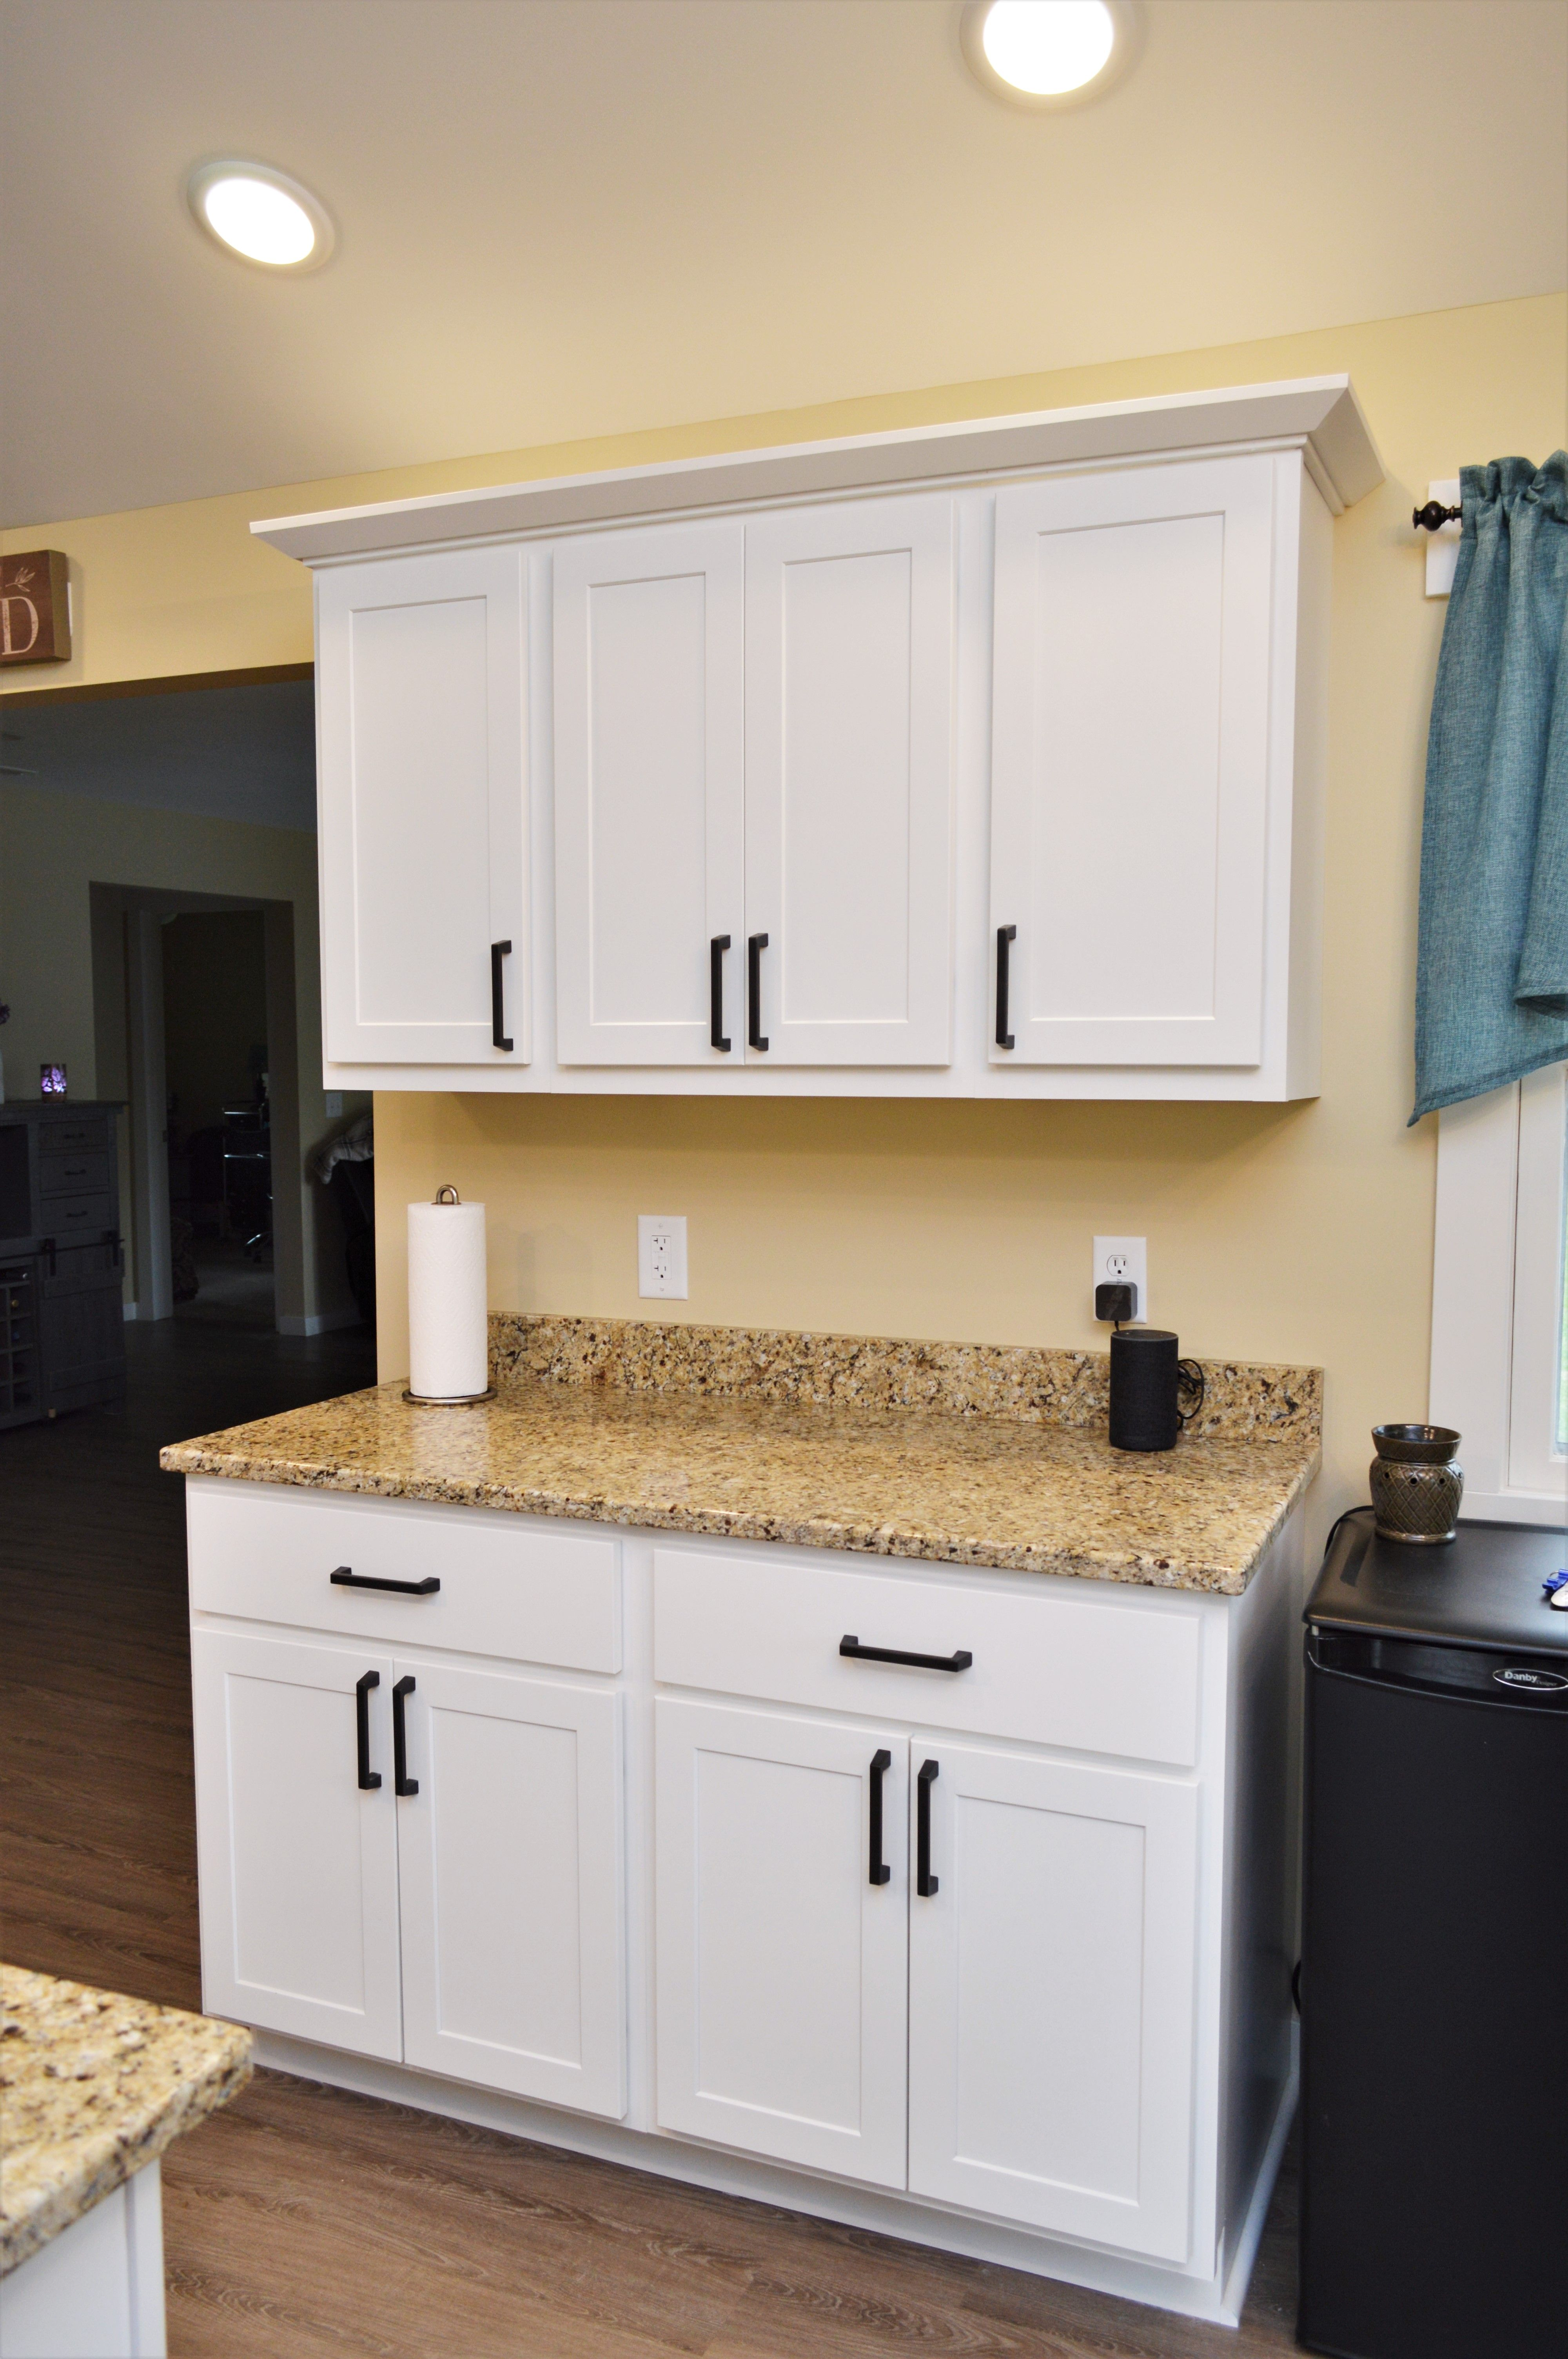 Bailey S Cabinets Kountry Wood Products Maple White Finish Georgetown Door Style Kitchen Cabinetry White Kitchen Cabinet